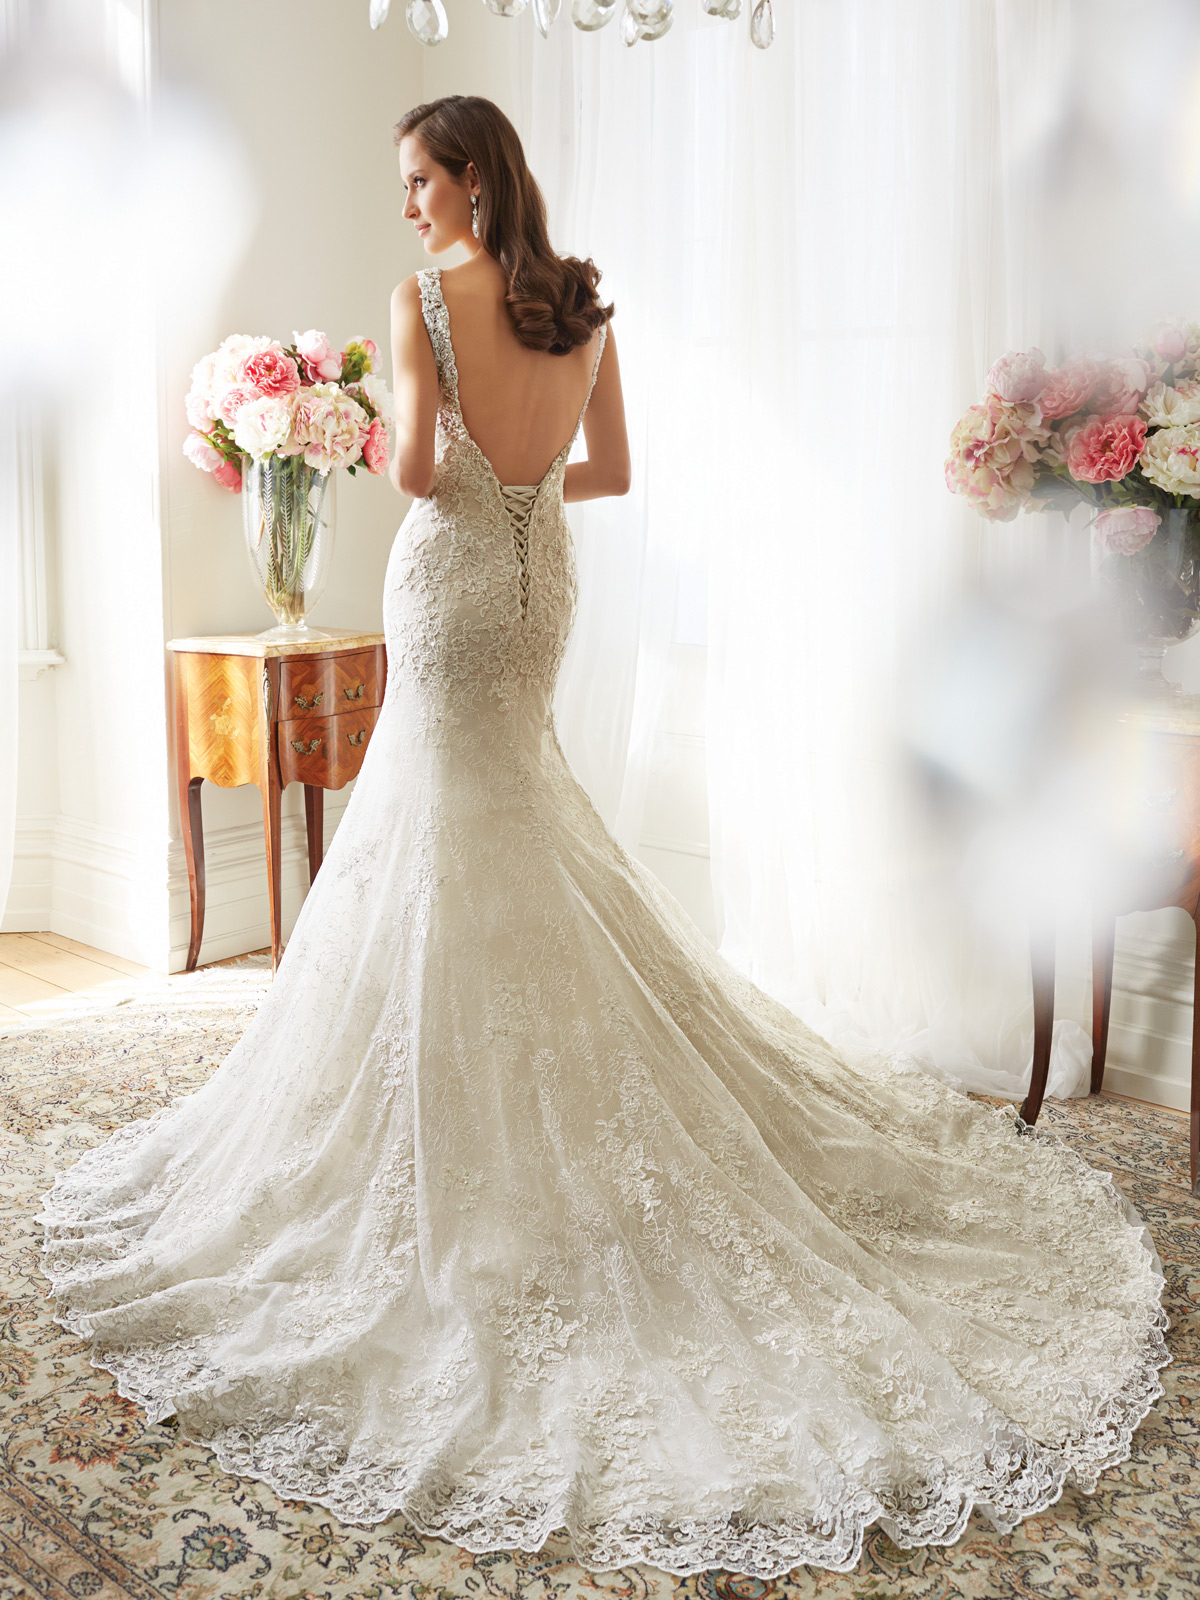 sophia tolli spring collection teal dresses for wedding Sophia Tolli Spring Collection Y